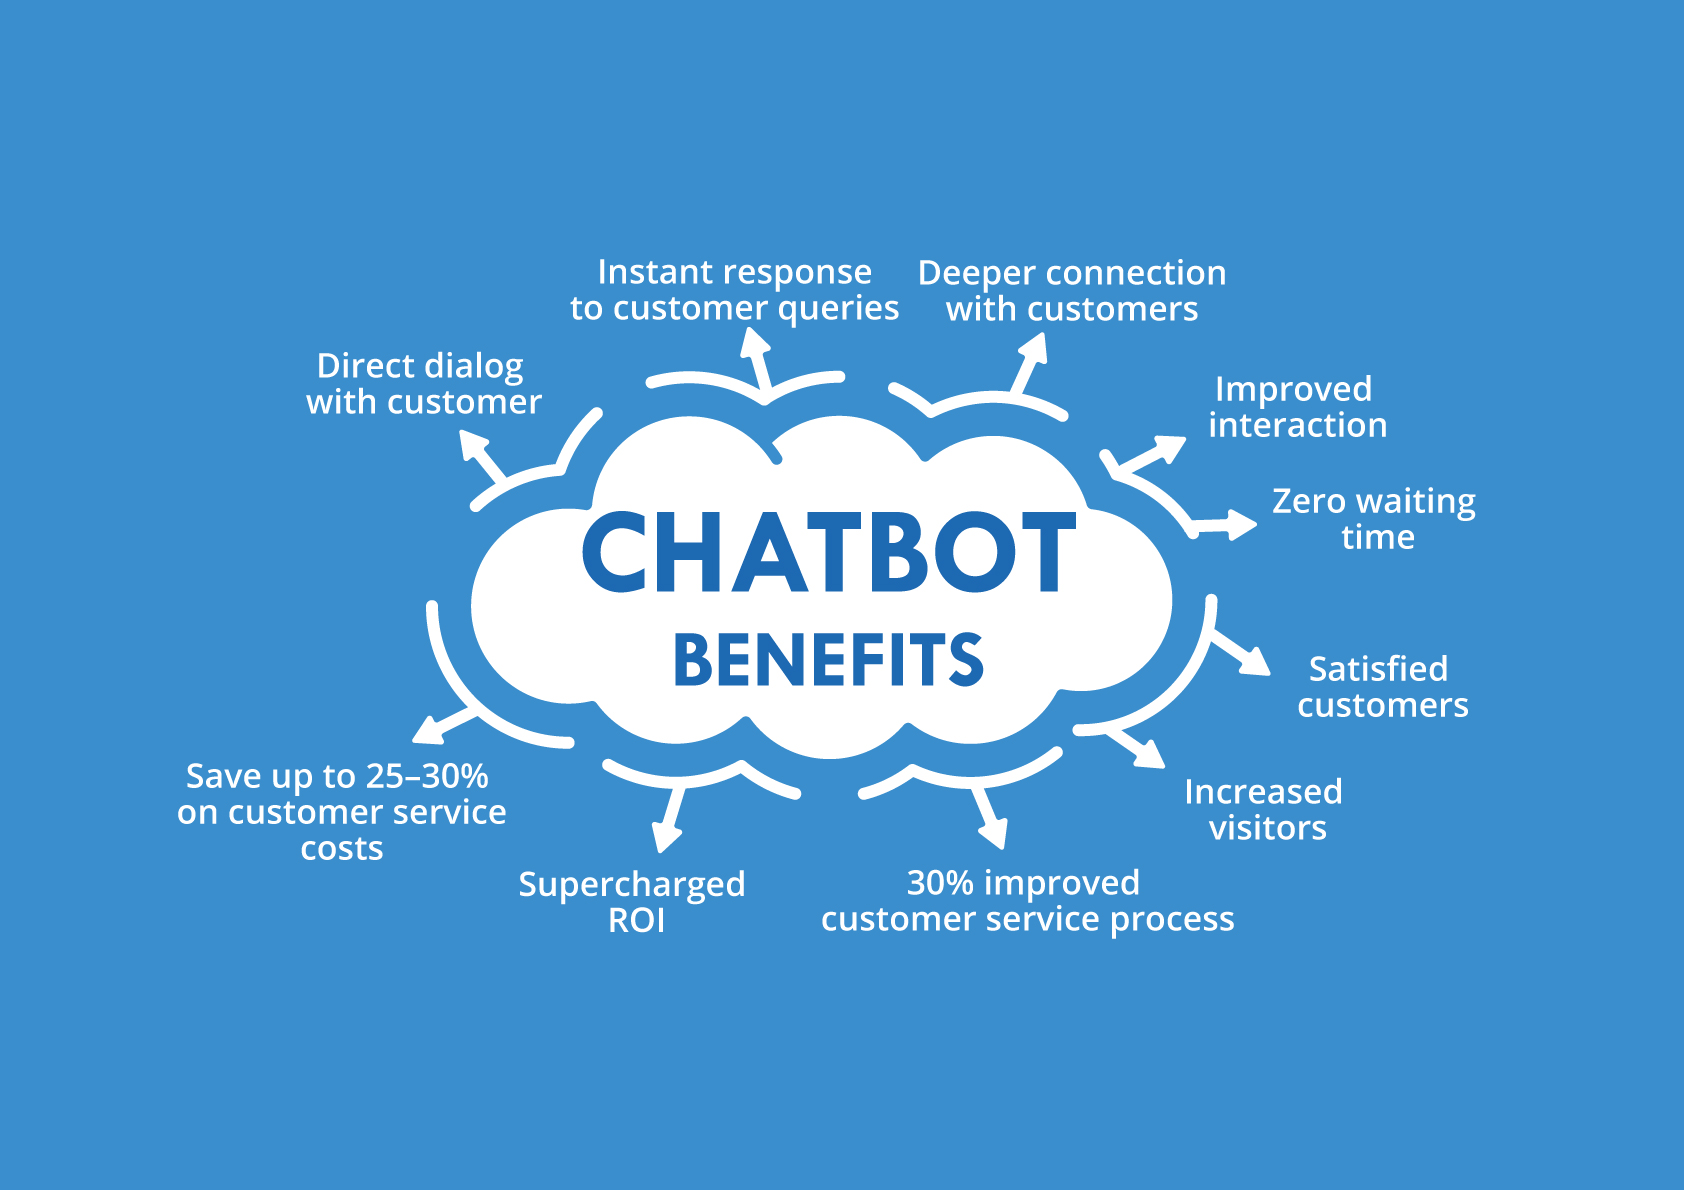 Benefits of Using Chatbots for Customer Service